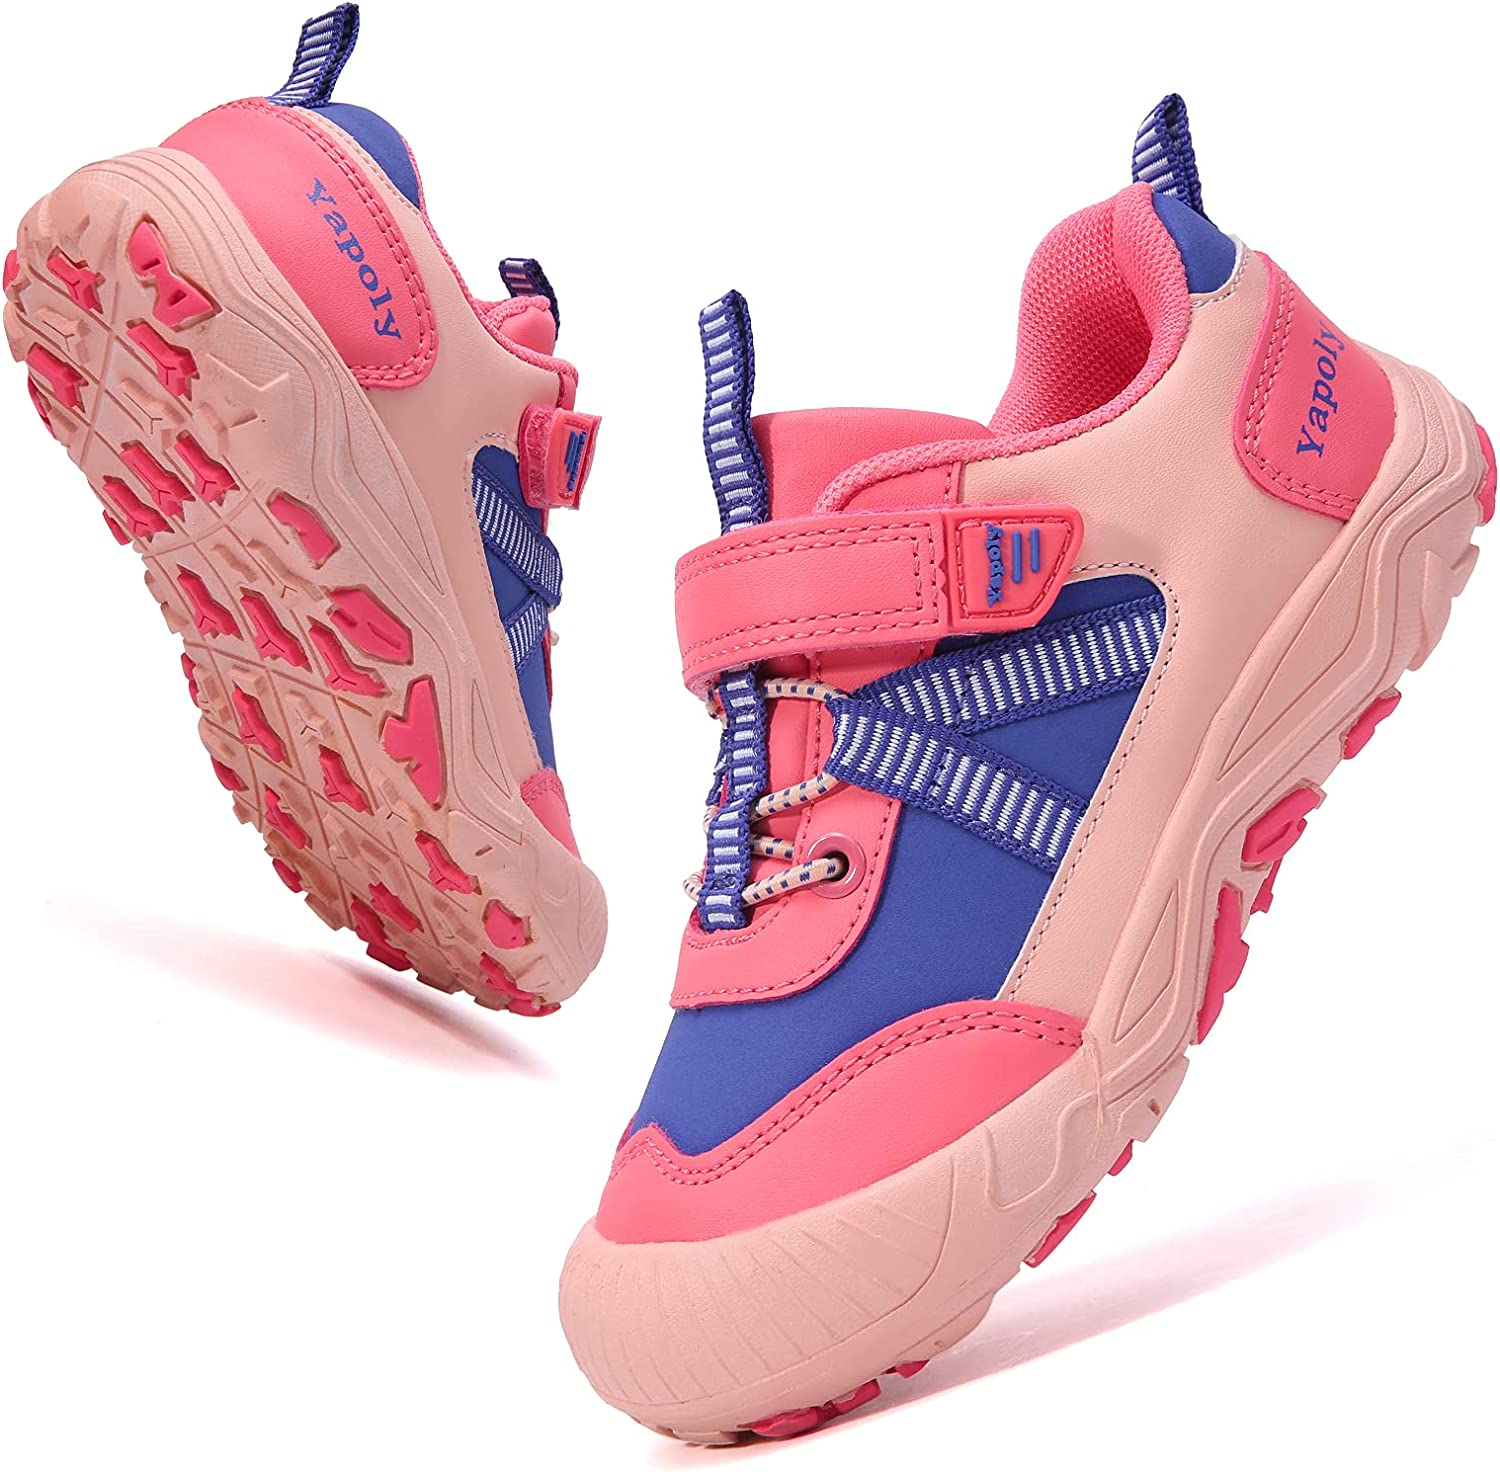 Yapoly Hiking Shoes Boys Girls - Toddlers Athletic Shoes Waterproof Anti-Collision for Trekking Trailing Camping Walking Running - Outdoor Kids Shoes Non-Slip for Little Big Kids